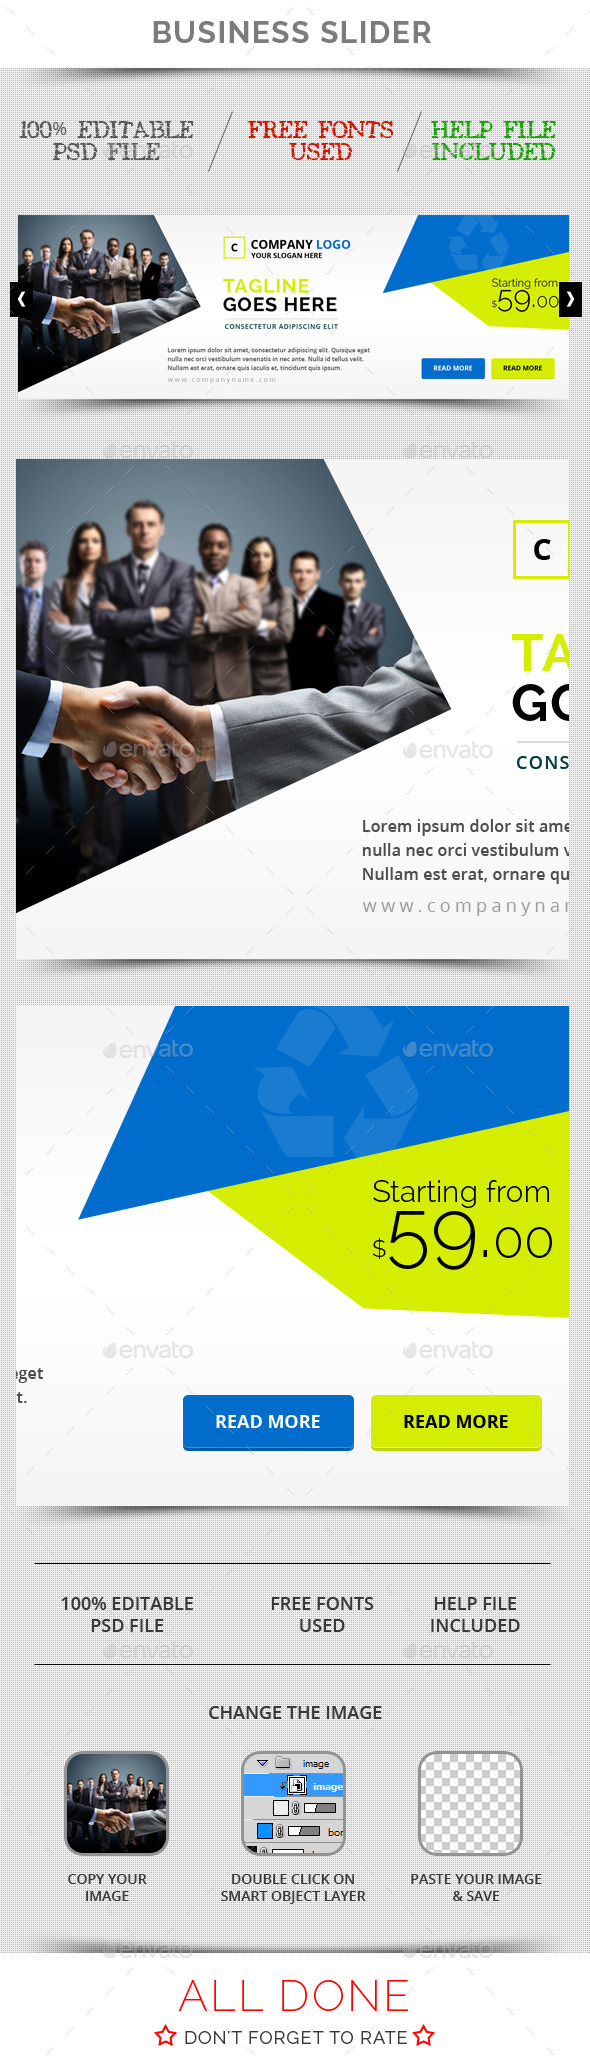 GraphicRiver Business Slider V11 11097874